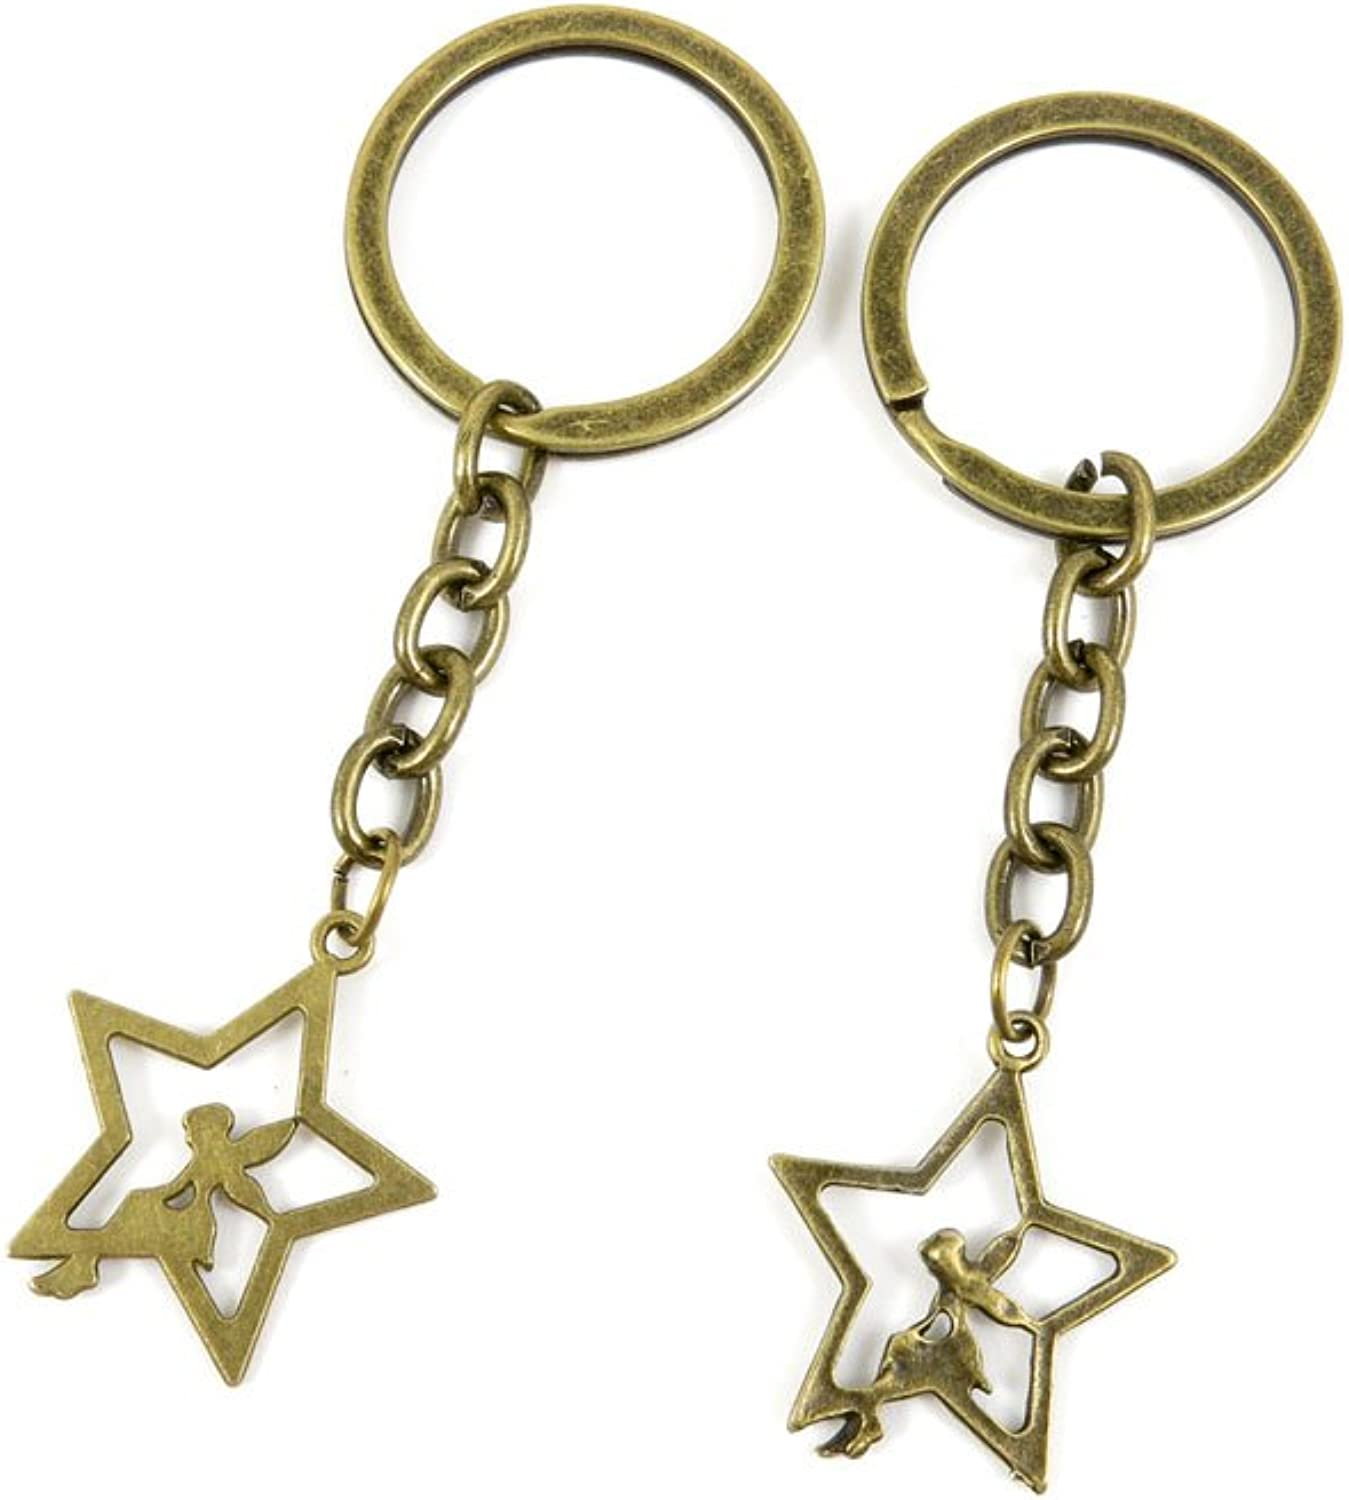 100 PCS Keyrings Keychains Key Ring Chains Tags Jewelry Findings Clasps Buckles Supplies M7TG9 Star Fairy Elf